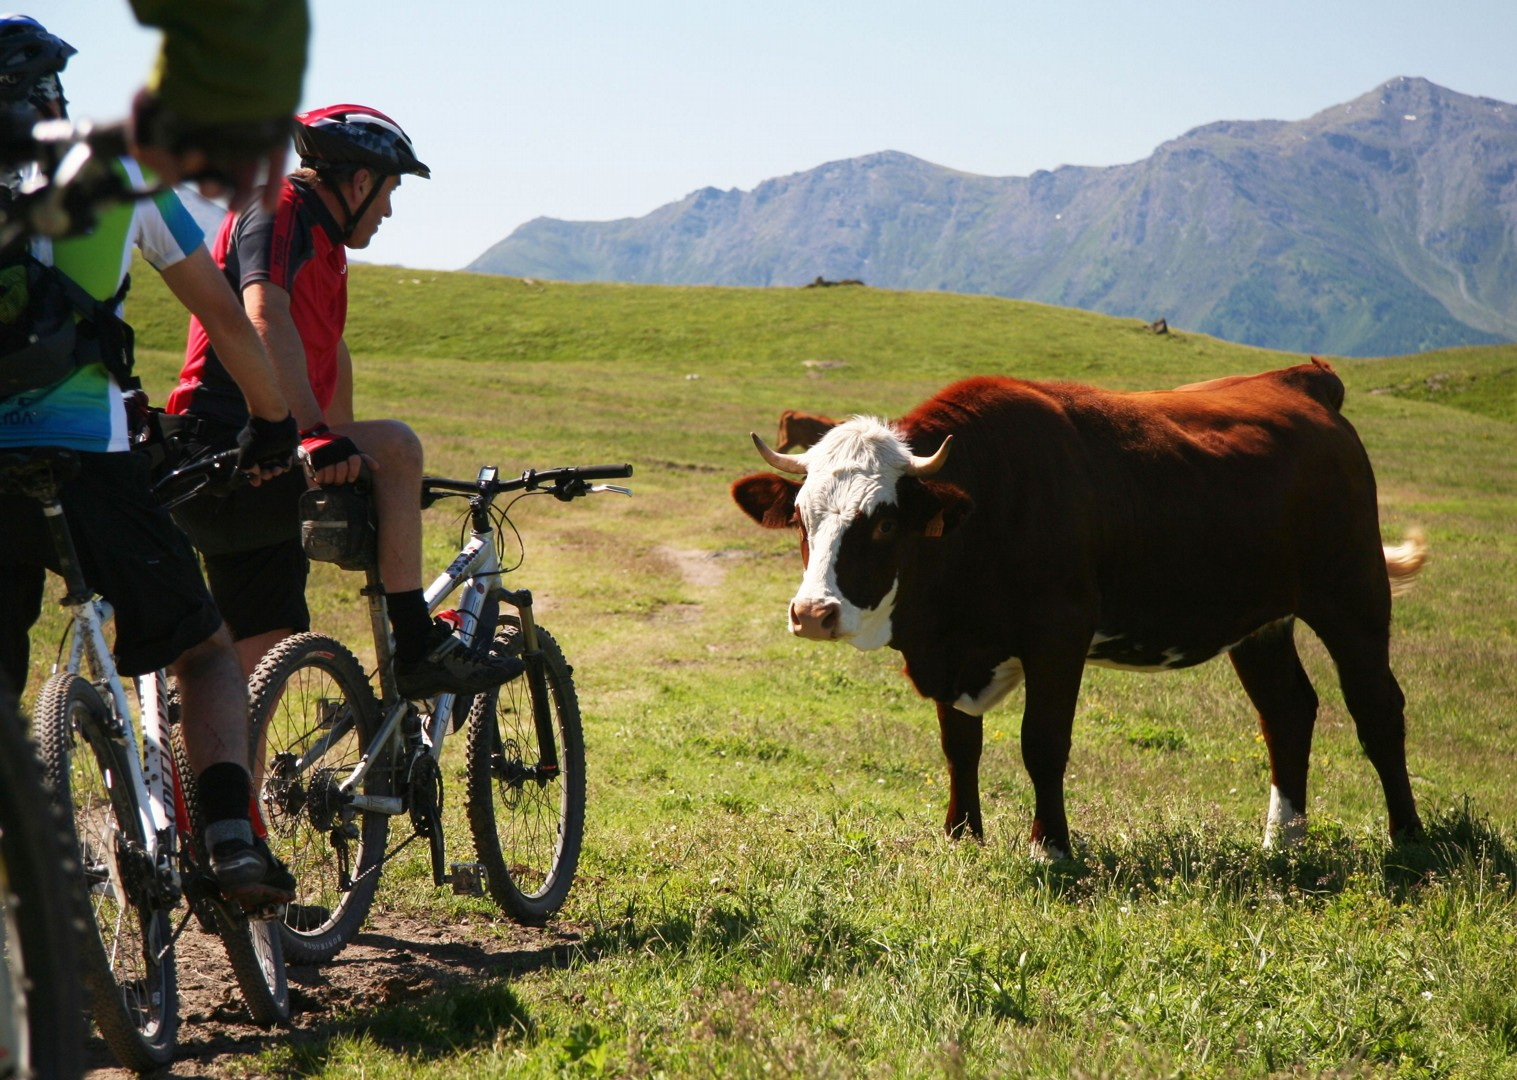 expert-guides-mountain-bike-holiday-in-the-alps-alpine-adventure.JPG - Italy and France - Alpine Adventure - Guided Mountain Bike Holiday - Italia Mountain Biking